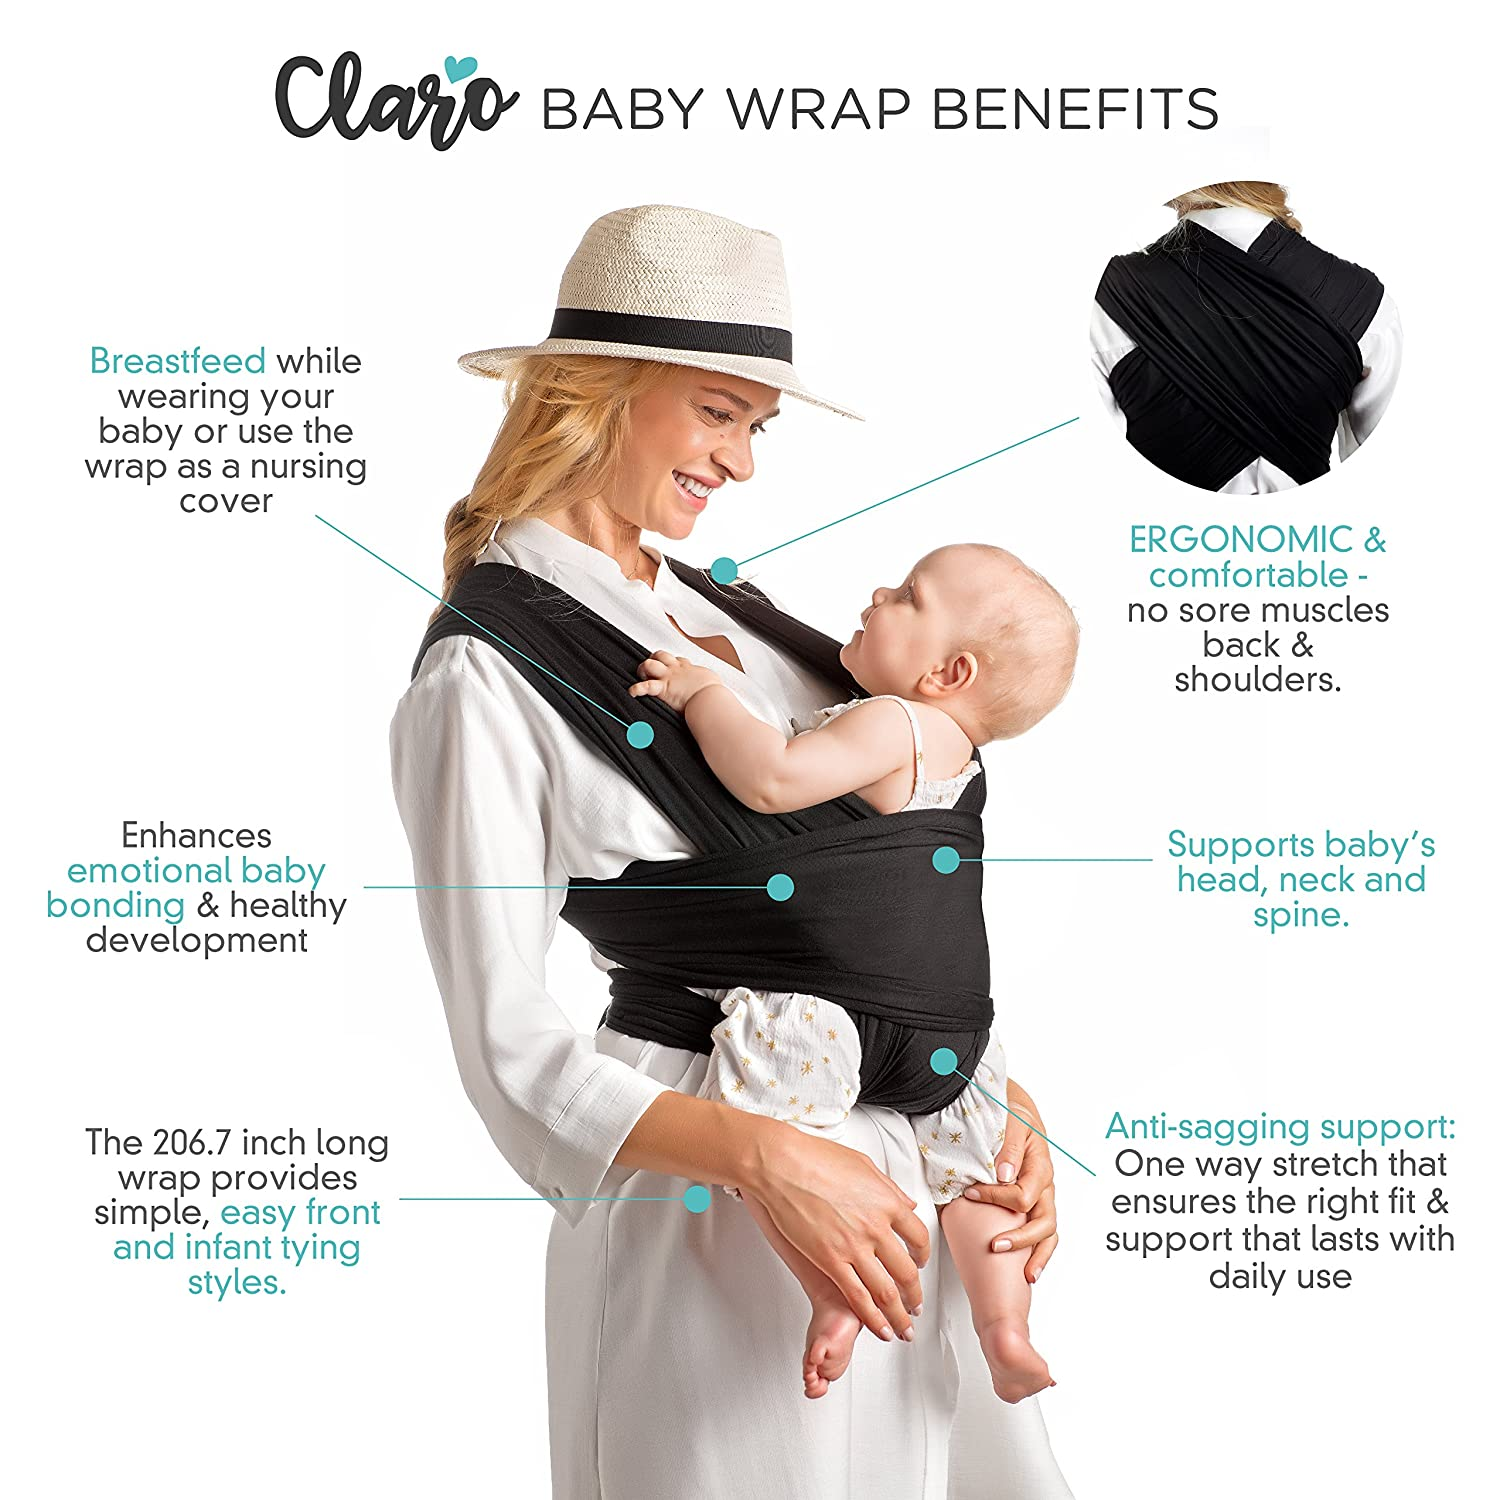 Baby Wrap Carrier Hands Free – Breathable Soft and Stretchy Baby Sling Carrier, Ergonomic, Safe Secure for Newborns, Babies Infants, No Back Pain, Good for Breastfeeding Black